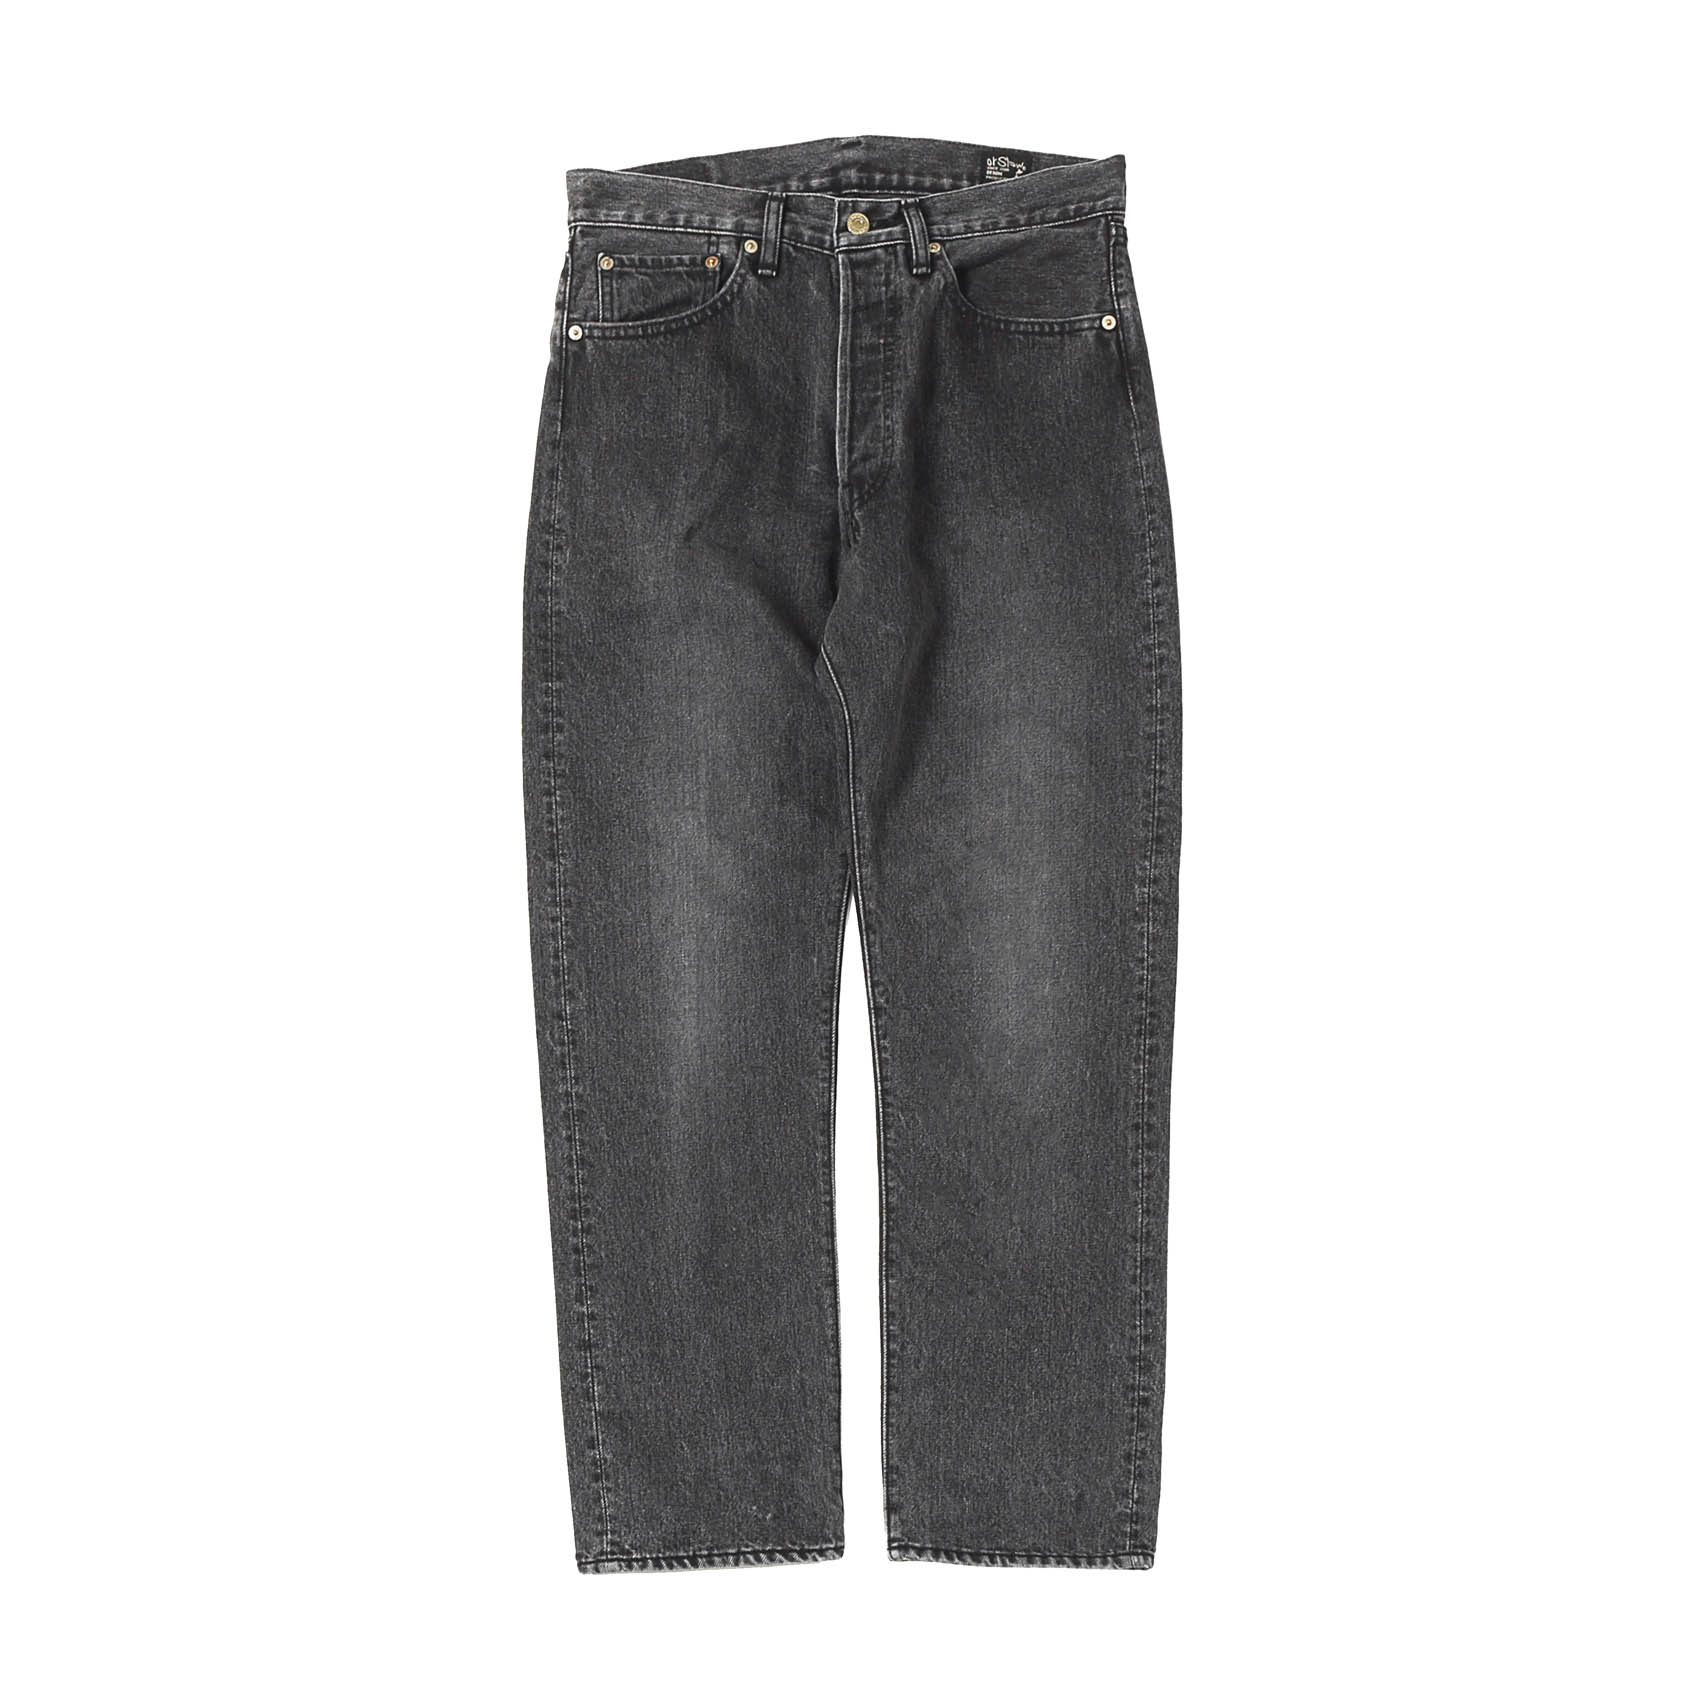 105W STANDARD DENIM - BLACK STONE WASHING